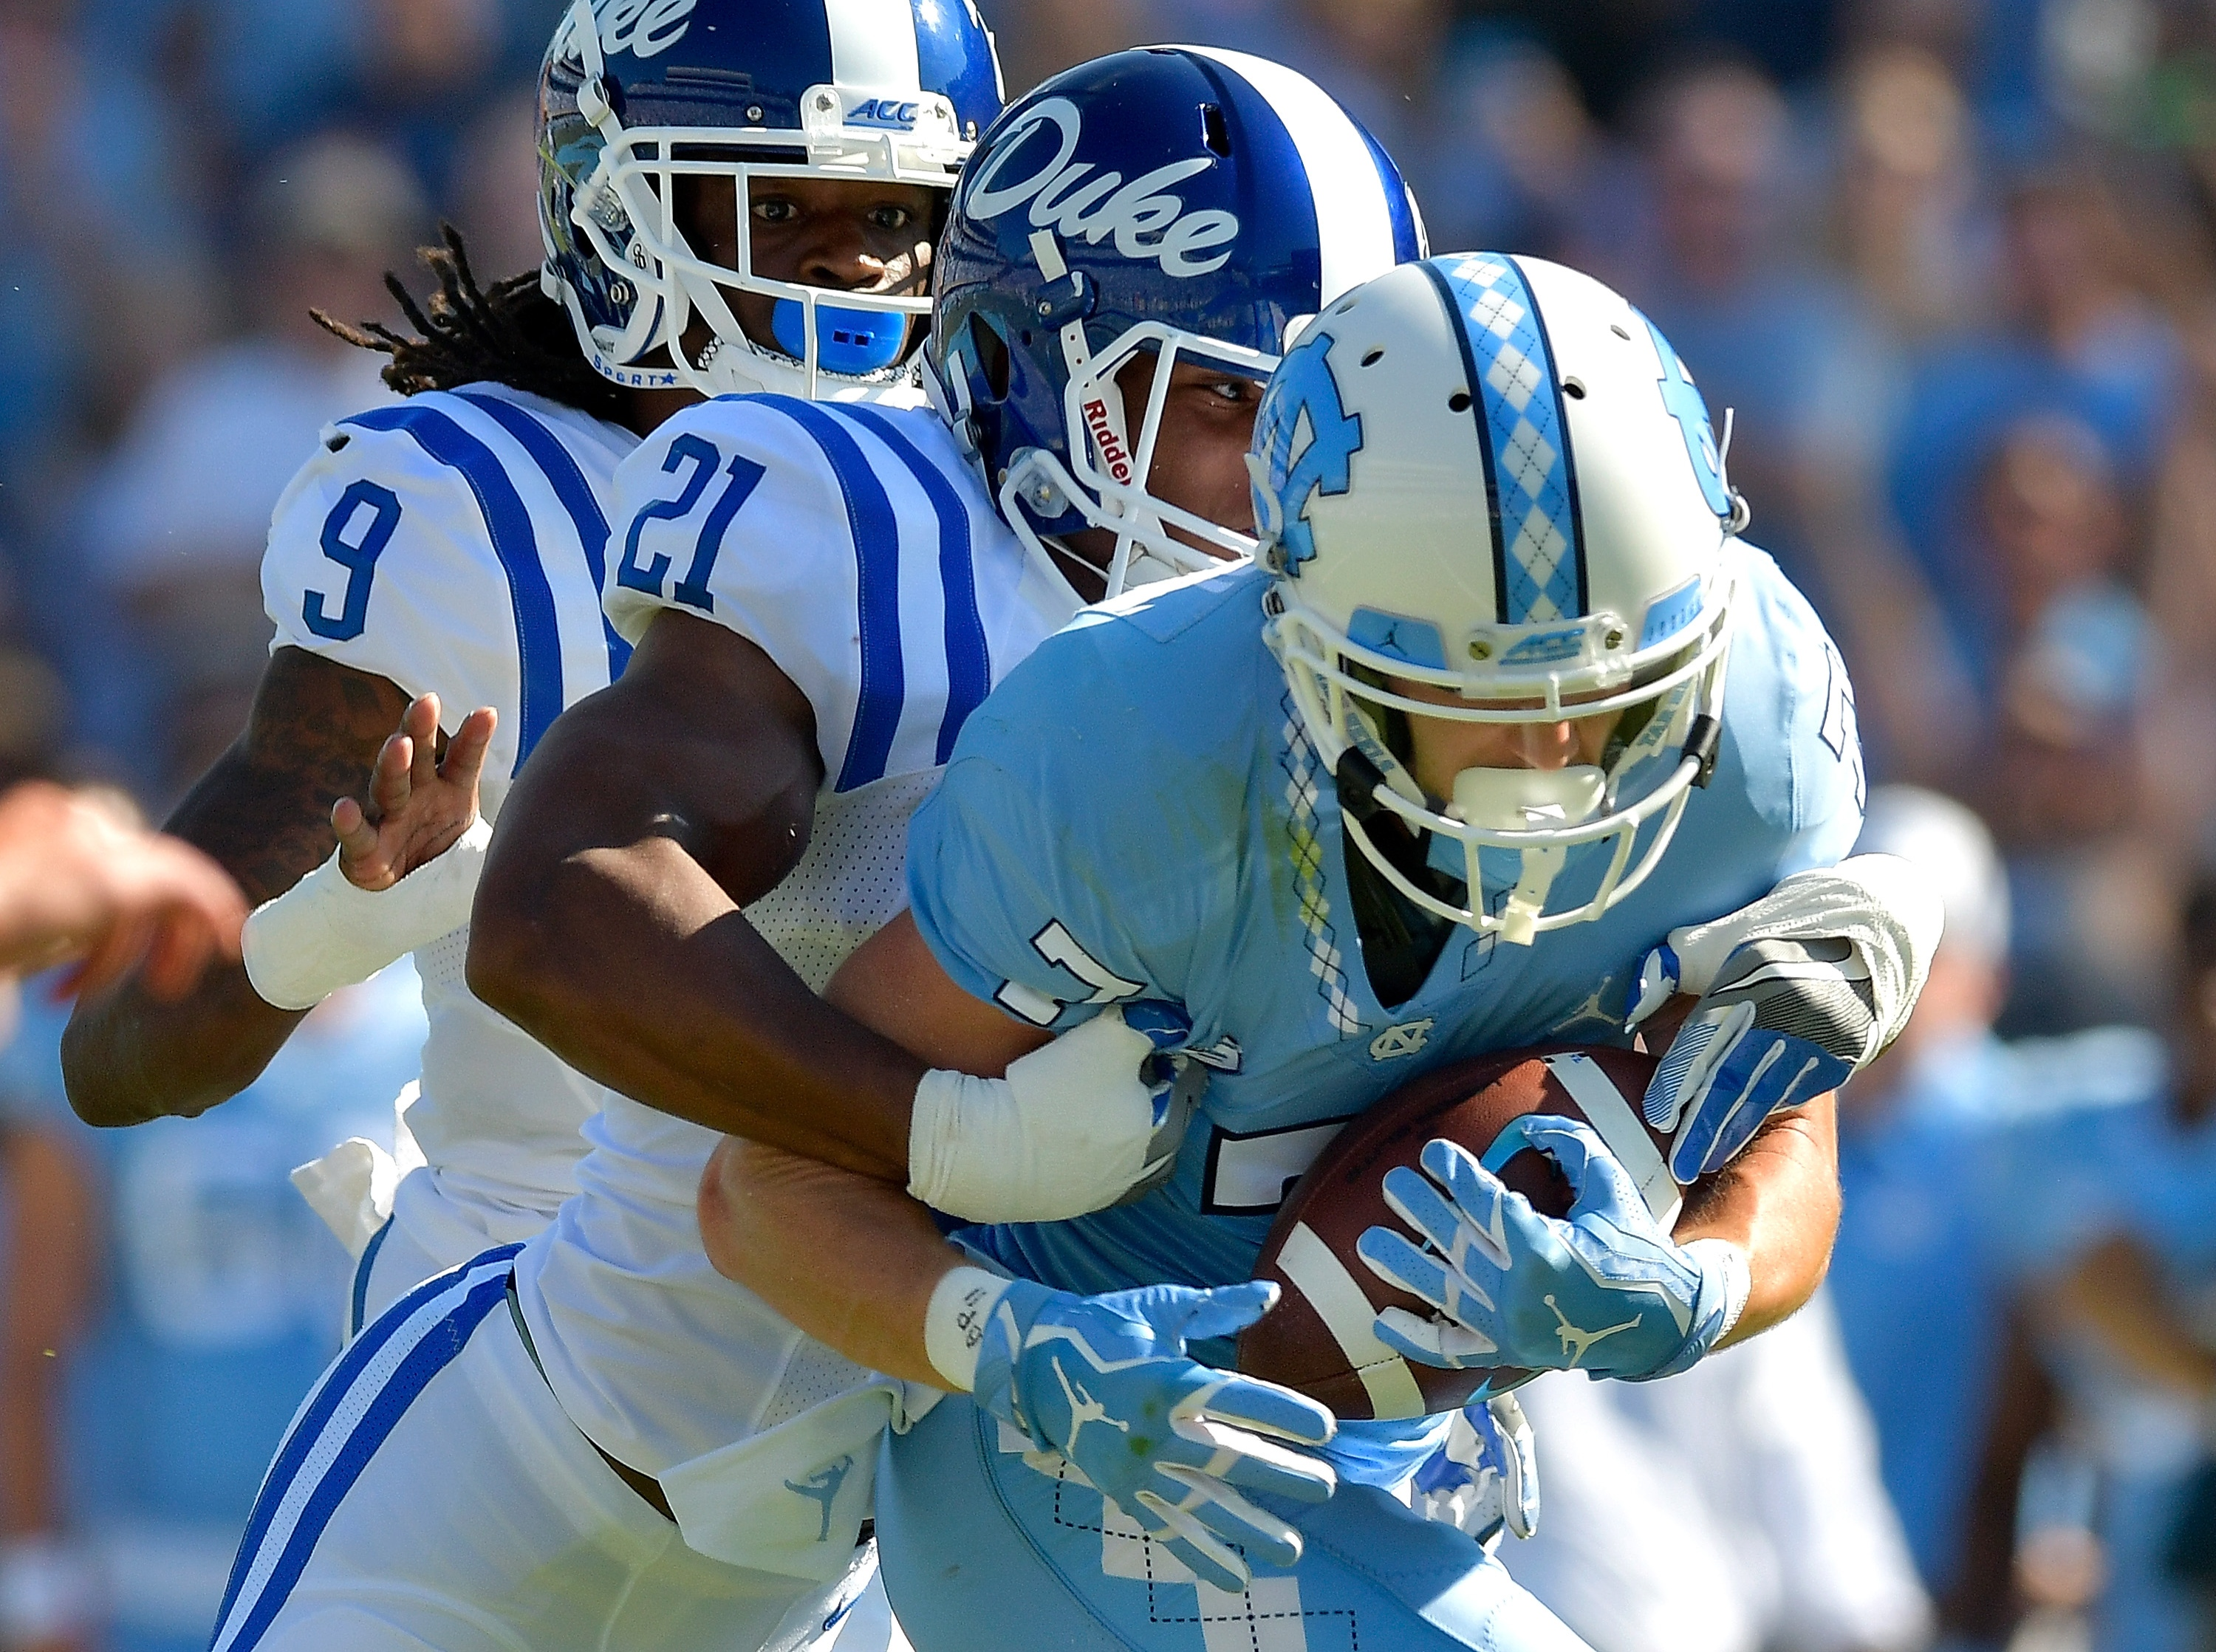 CHAPEL HILL NC – SEPTEMBER 23 Alonzo Saxton II 21 of the Duke Blue Devils tackles Austin Proehl 7 of the North Carolina Tar Heels during their game at